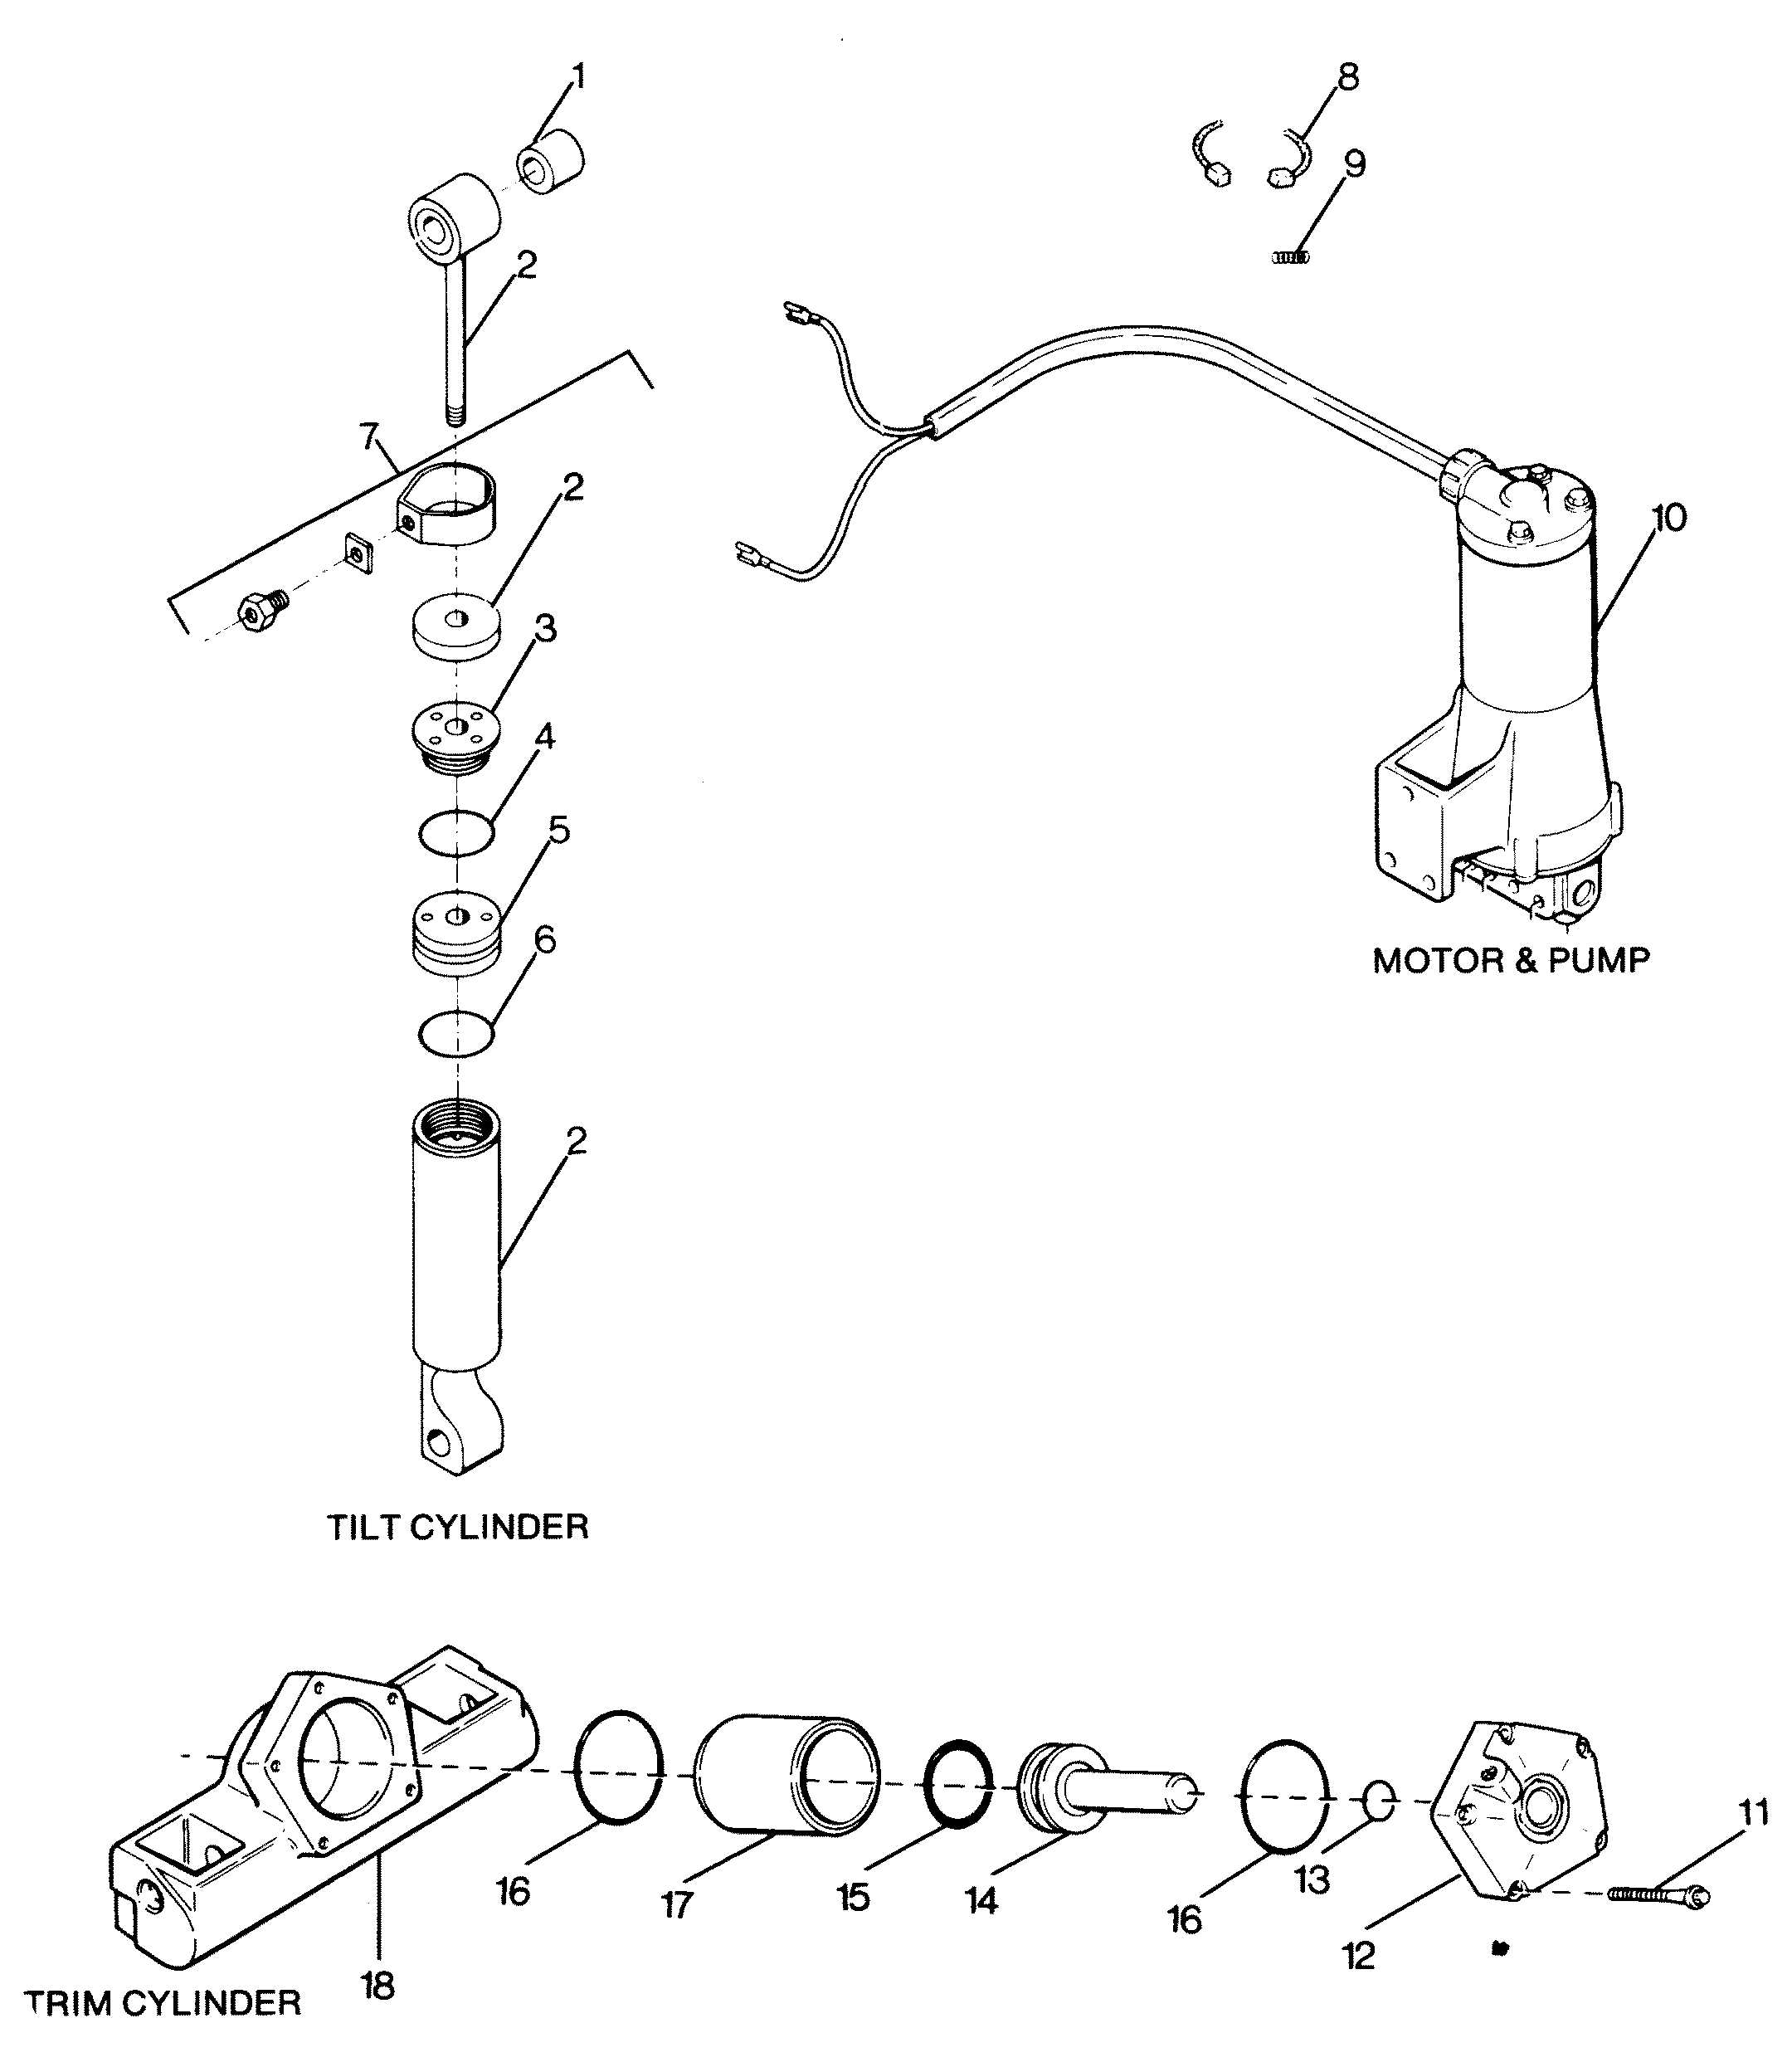 outboard motor parts breakdown